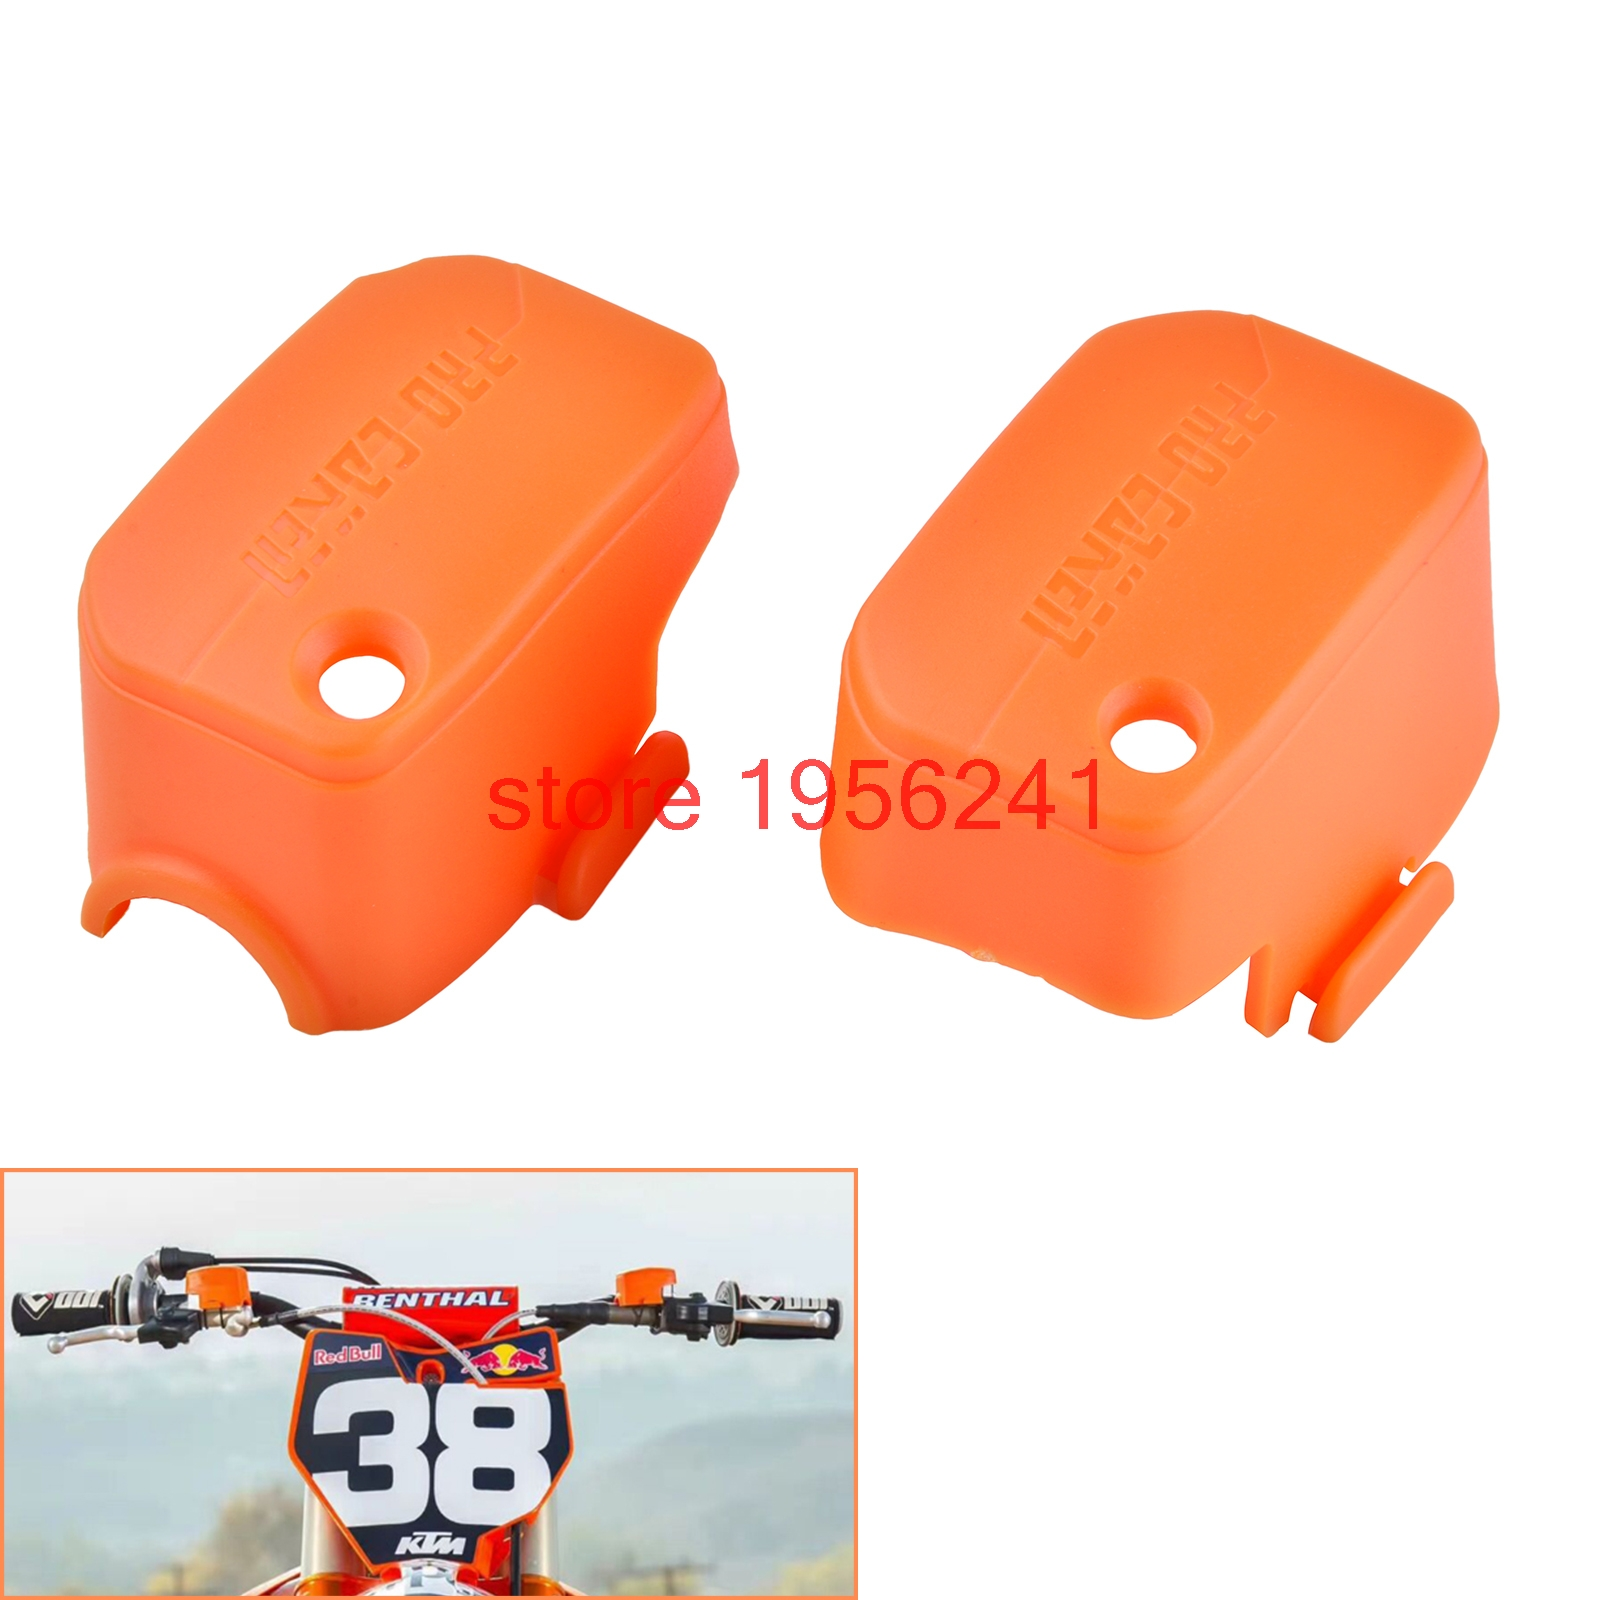 Plastic Master Cylinder Cover For KTM 125 200 250 300 350 400 450 500 525 530 SX SXF XC XCF XCW XCF-W EXC EXC-F SMR XCR-W orange cnc billet factory oil filter cover for ktm sx exc xc f xcf w 250 400 450 520 525 540 950 990